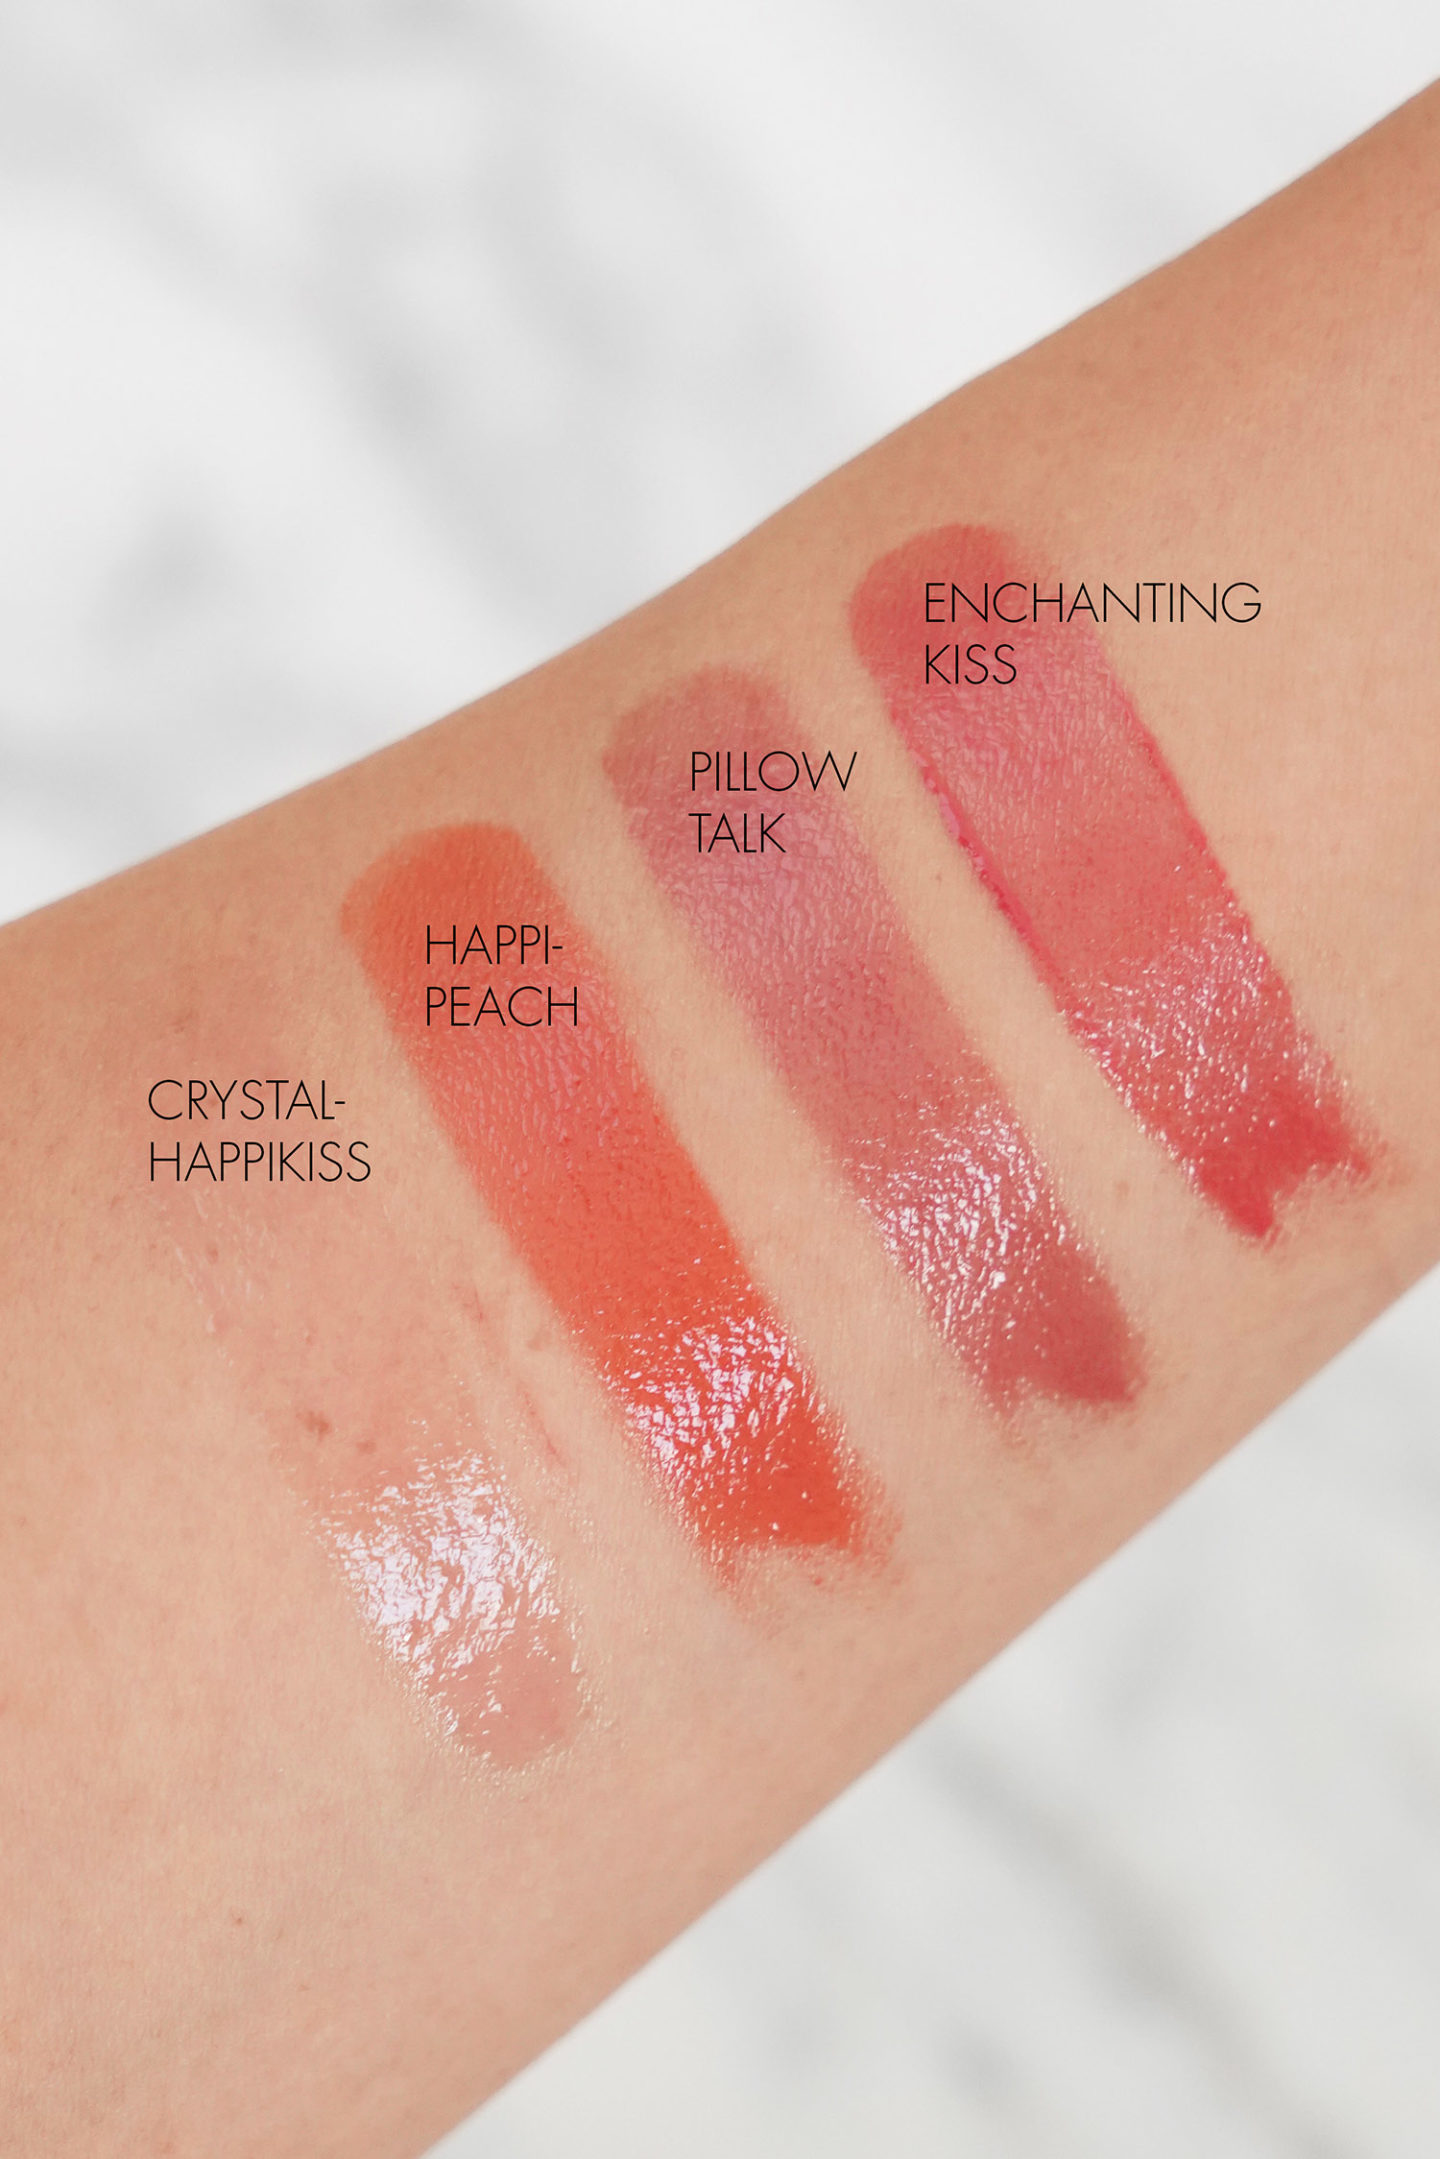 Charlotte Tilbury Hyaluronic Happikiss Lipstick Baumes Swatches